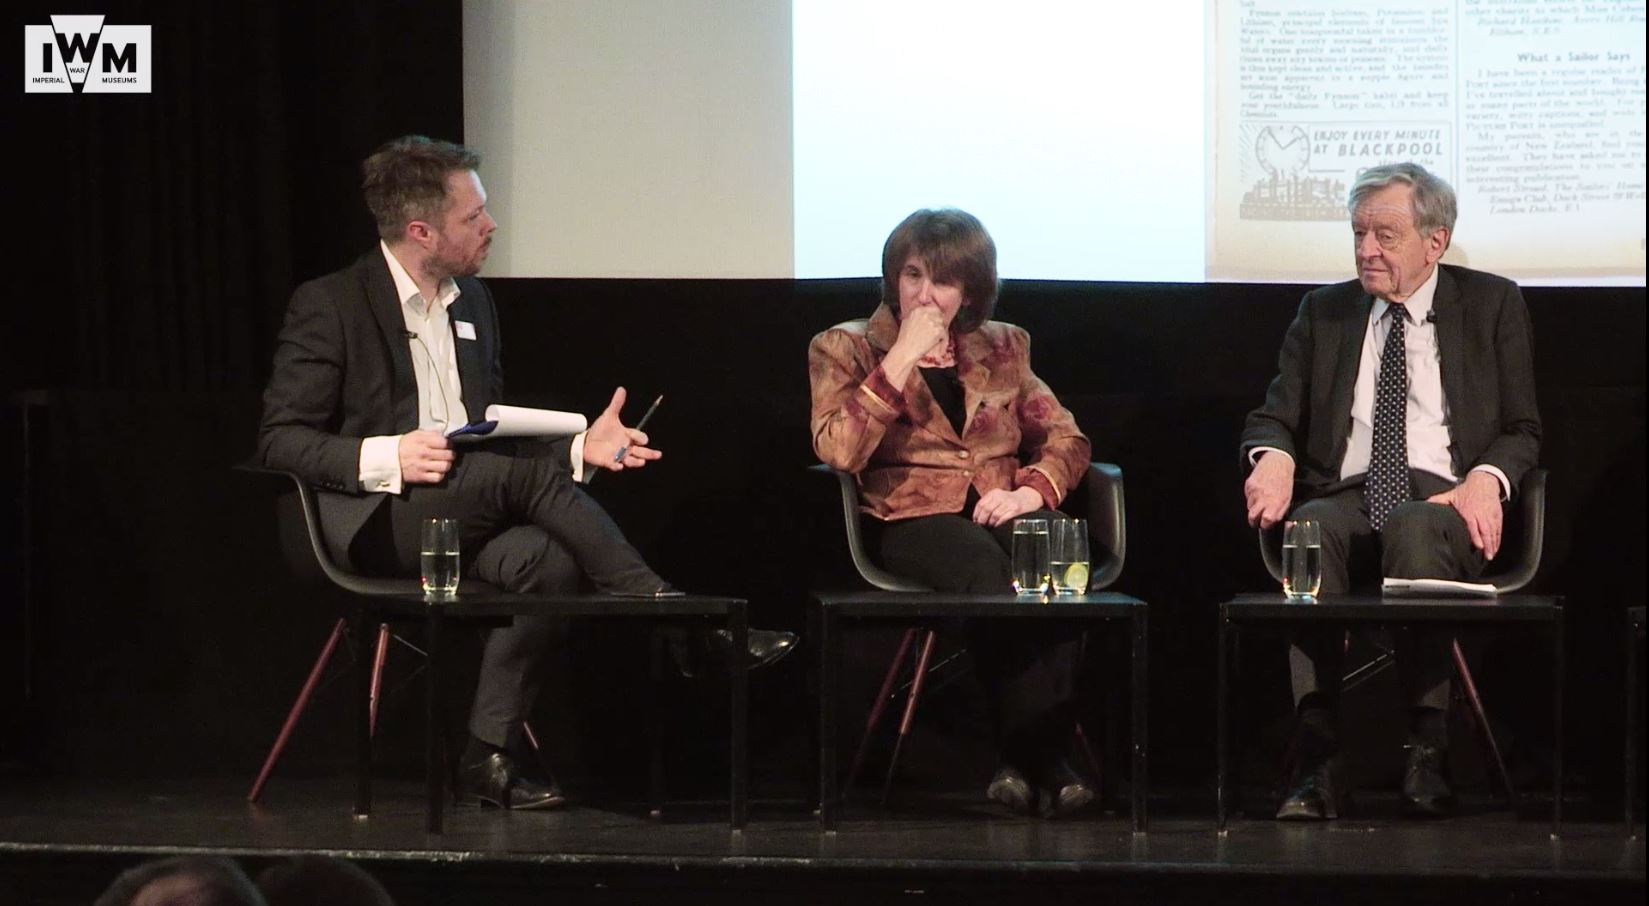 Still from a video of an event at IWM in March 2018, featuring James Bulgin, Barbara Winton and Lord Dubbs